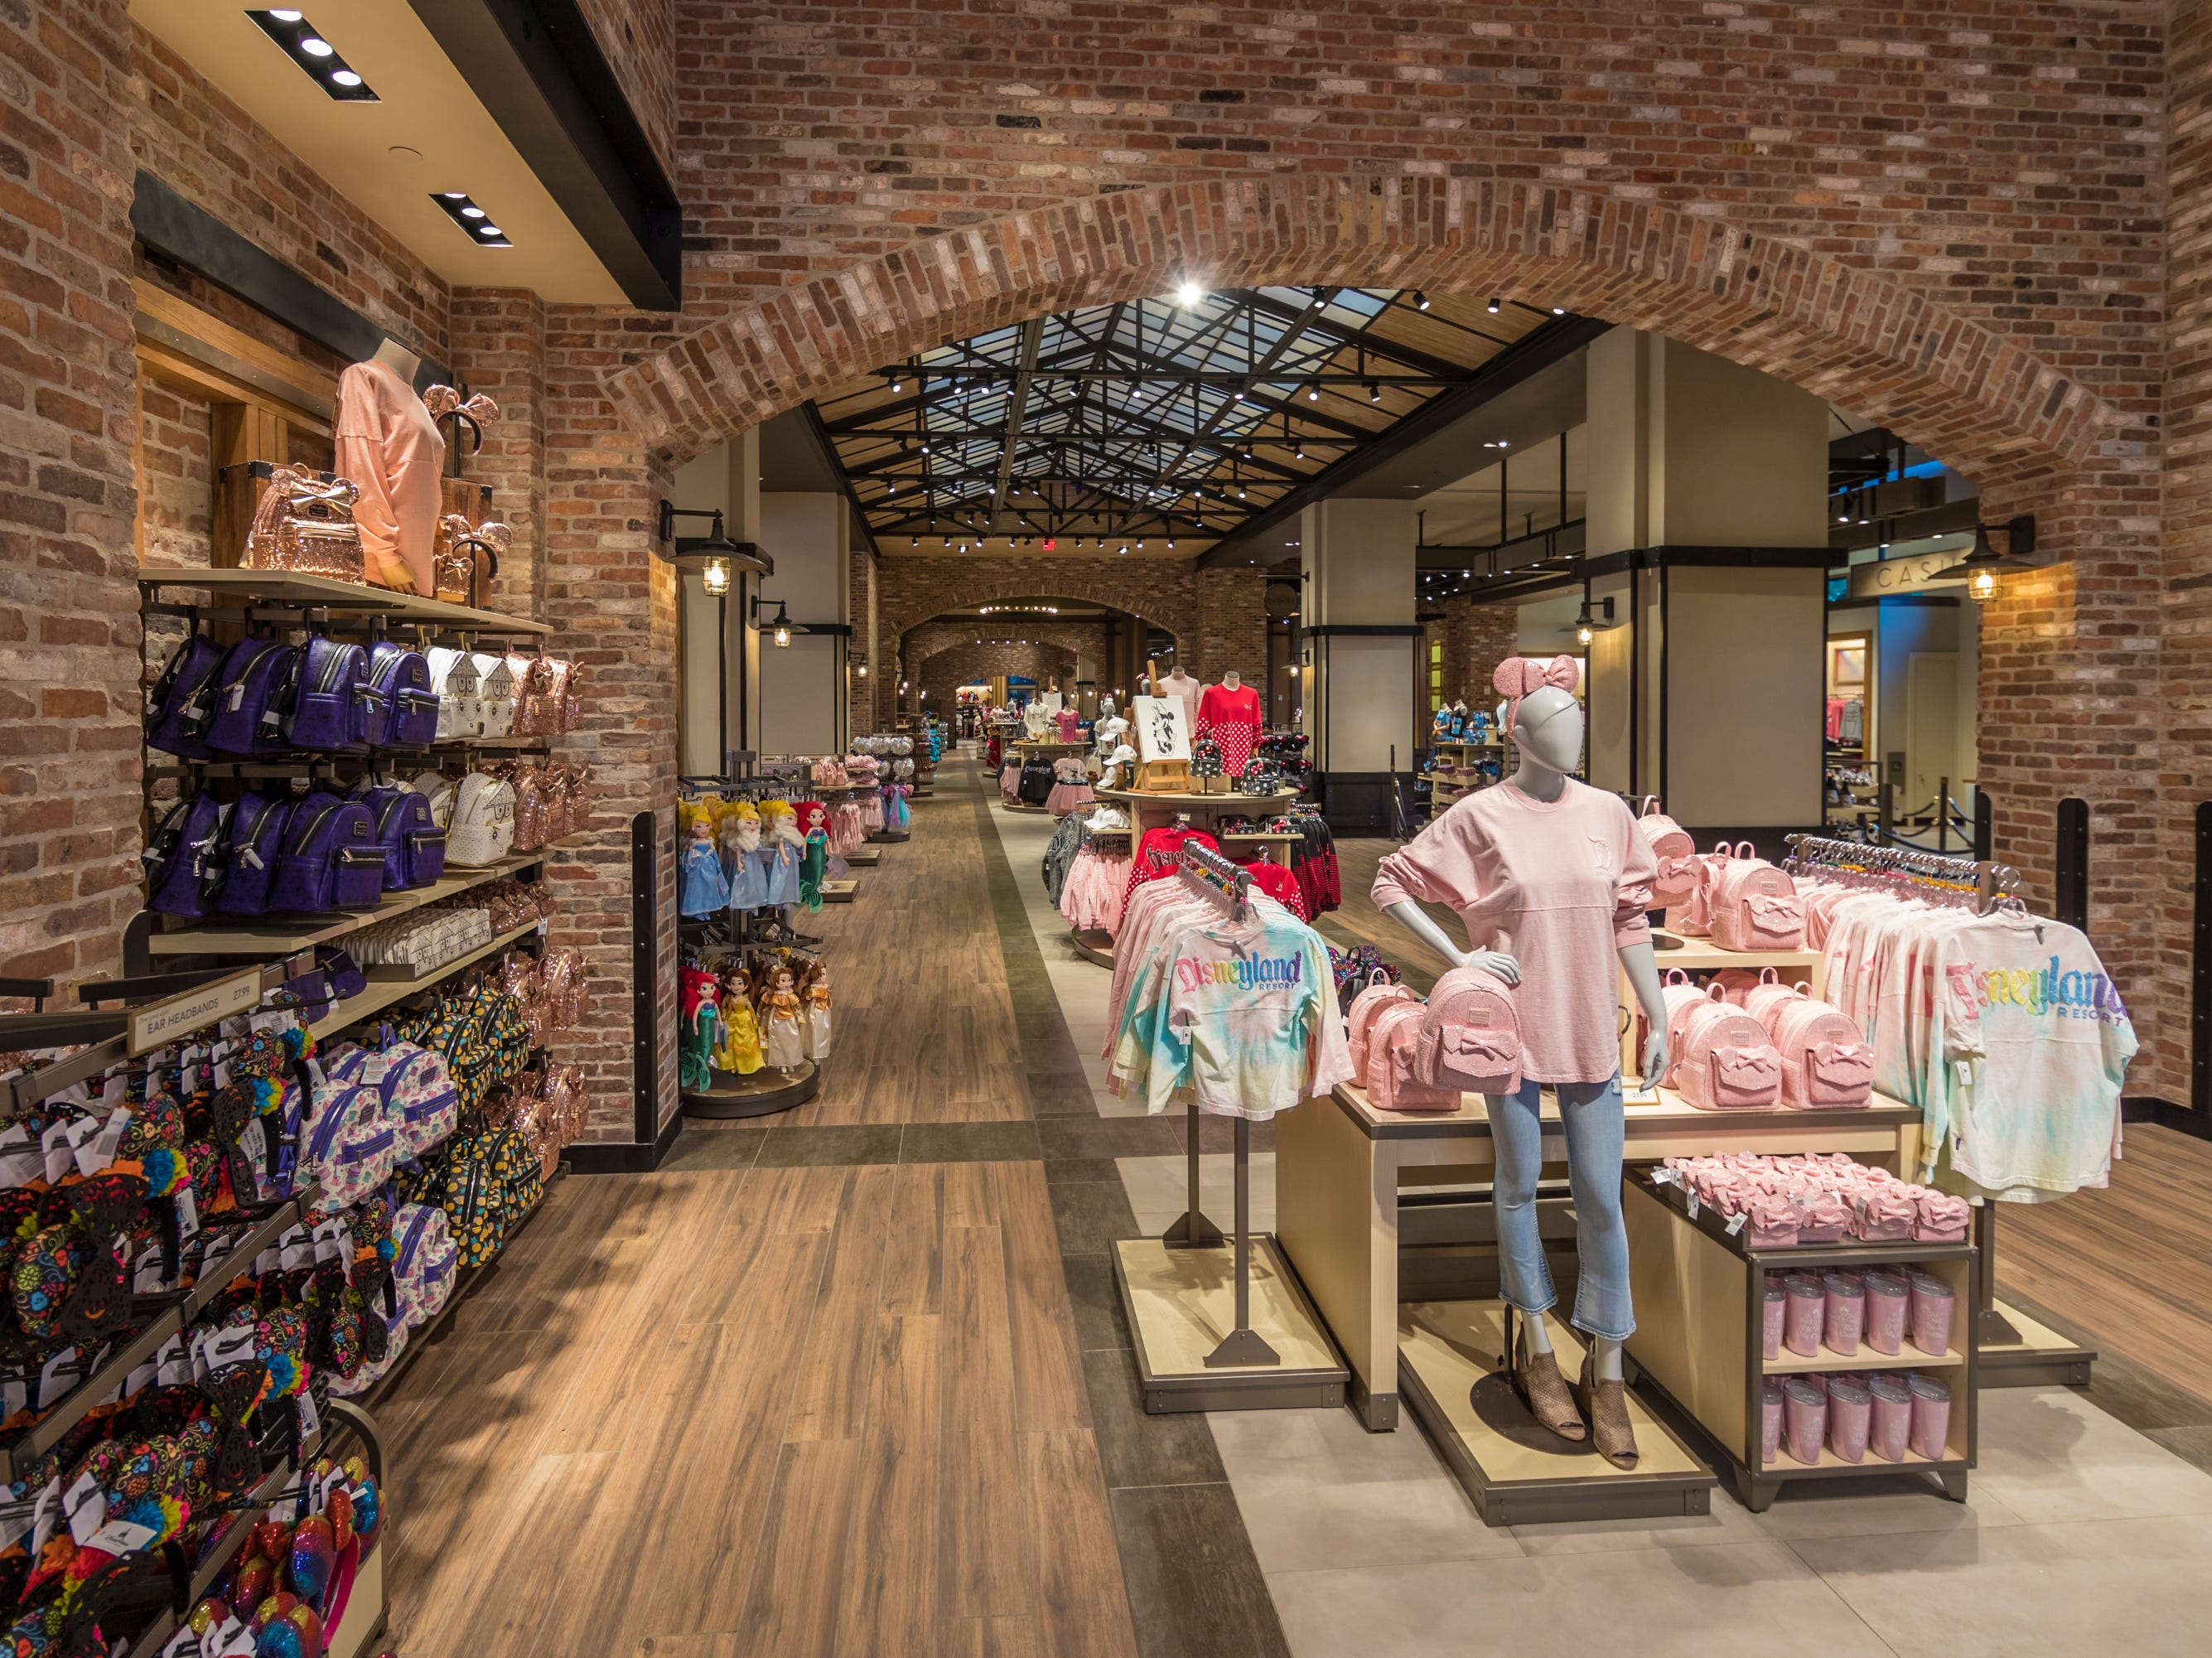 Disney recently debuted the remodeled World of Disney, the shopping destination at the Downtown Disney District. It now features a reimagined layout that makes shopping easier.